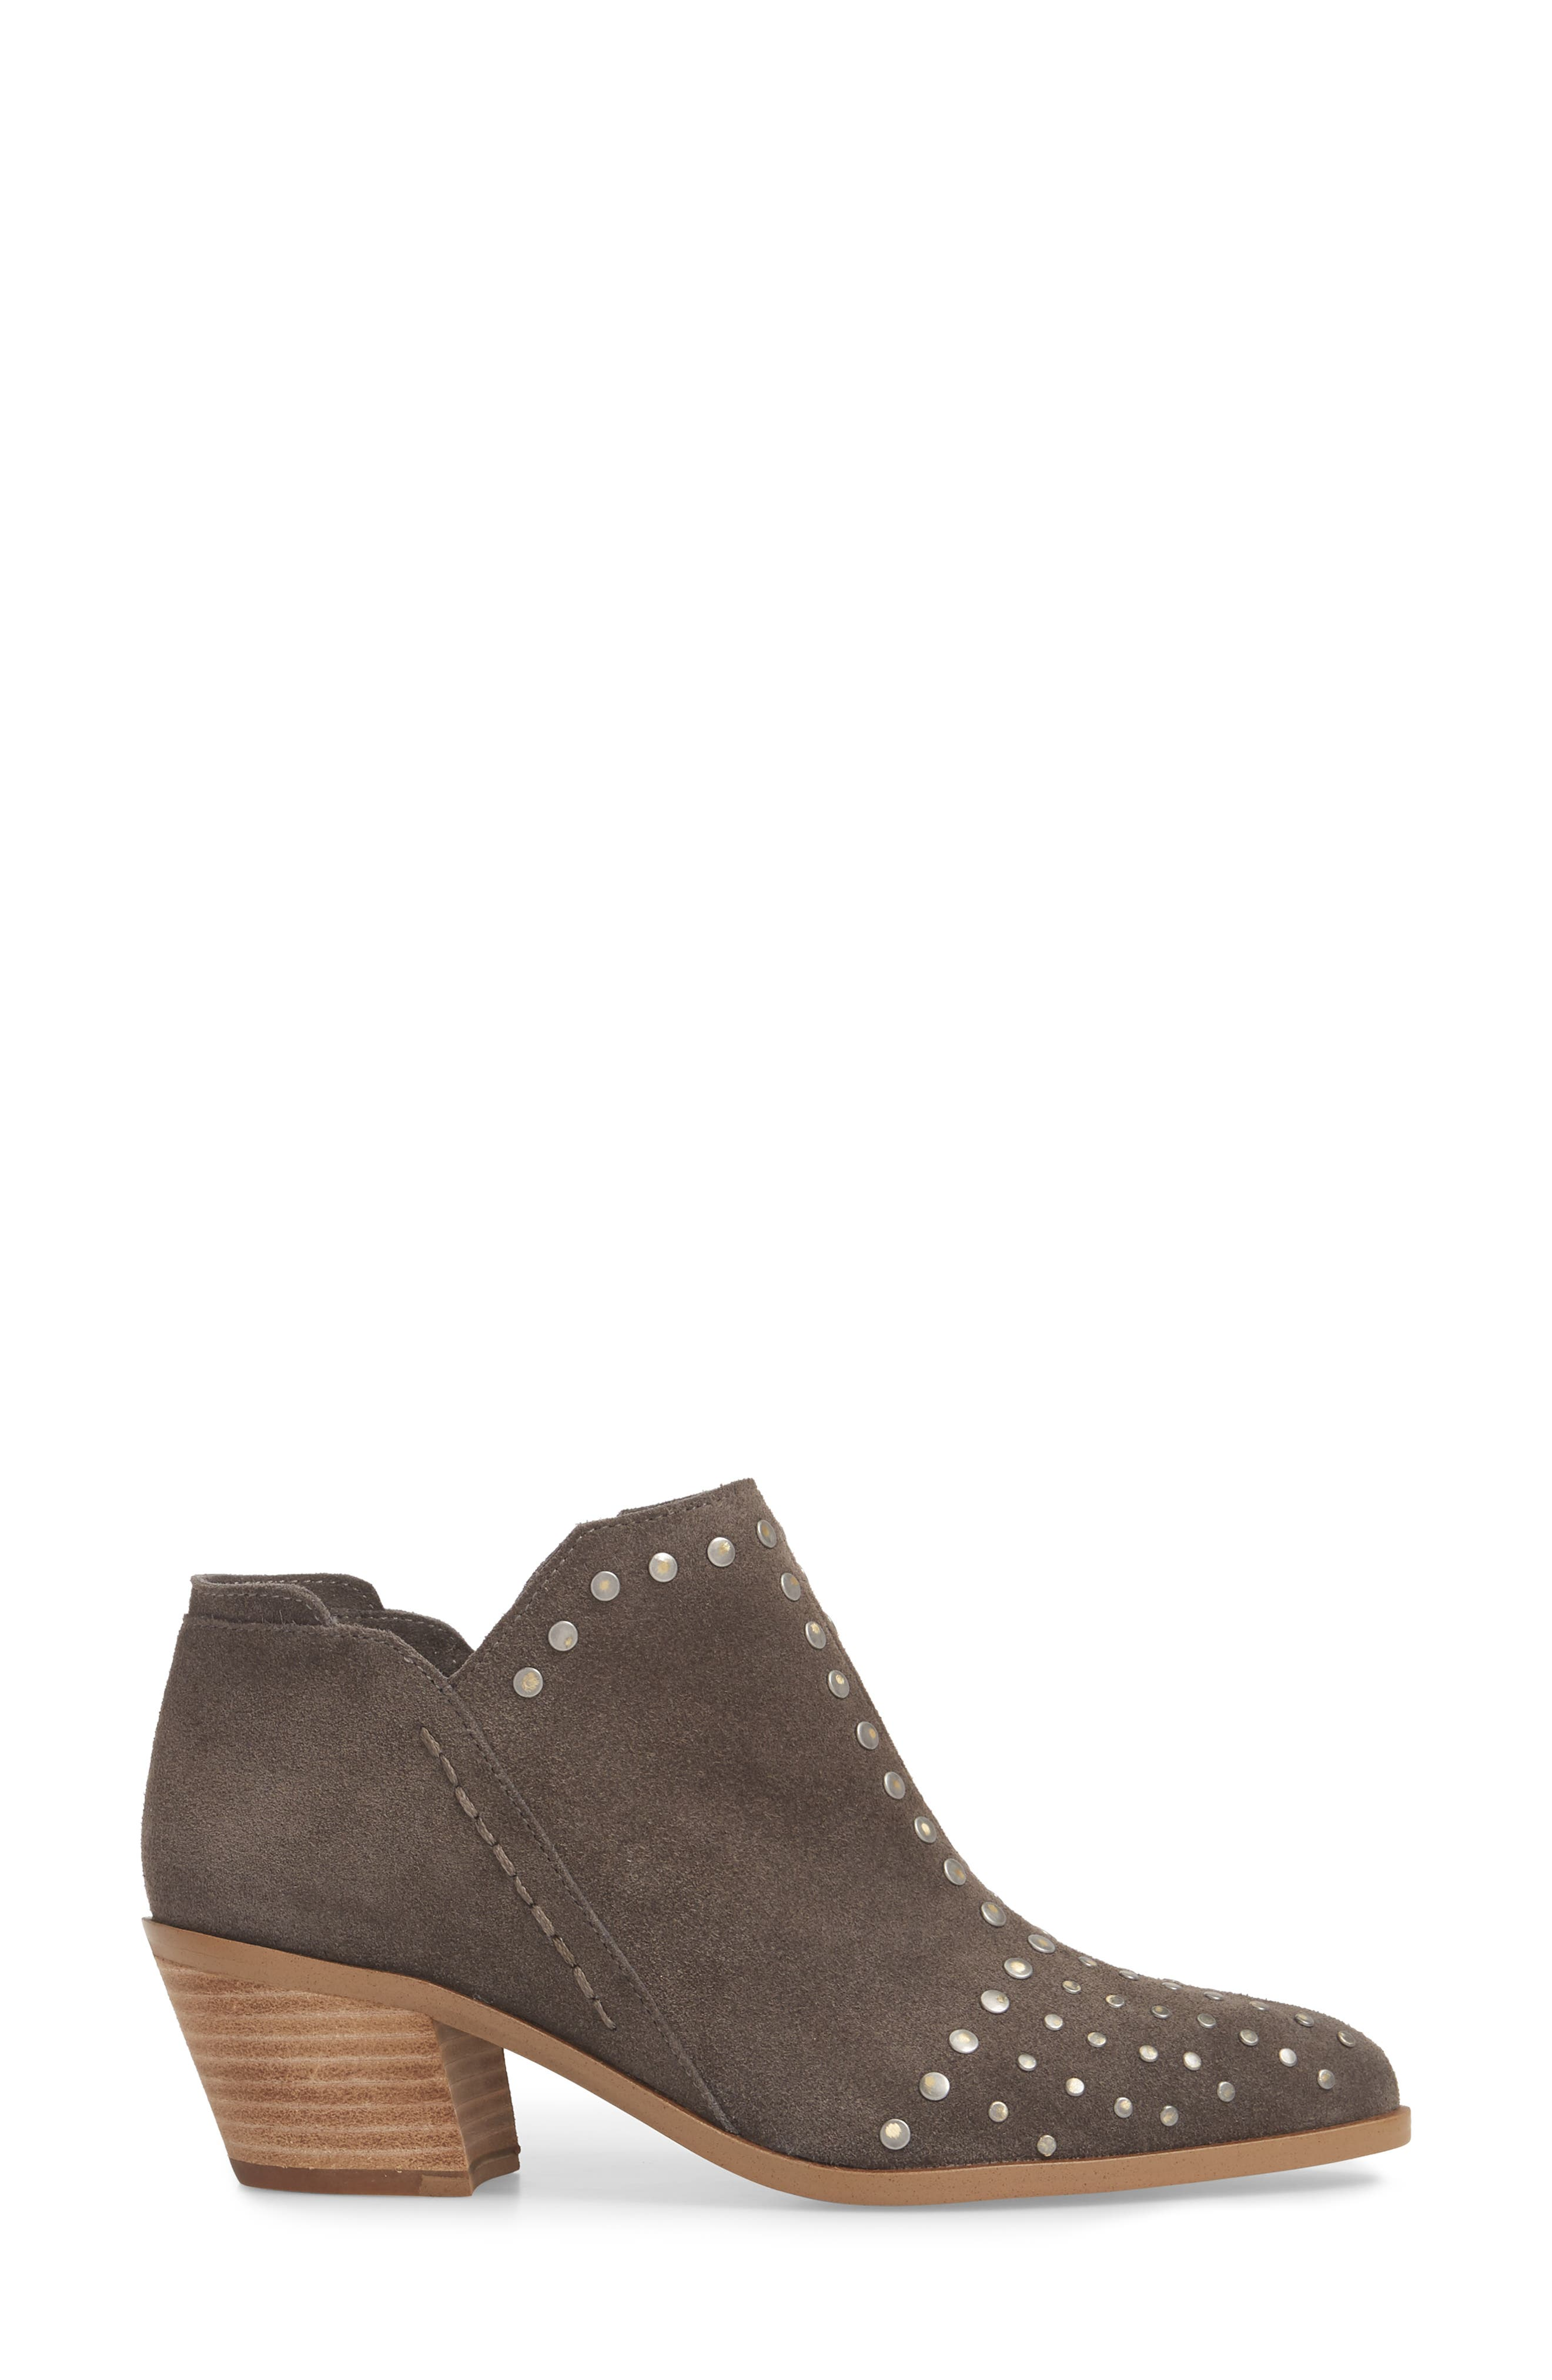 Loka Studded Bootie,                             Alternate thumbnail 3, color,                             CHARCOAL SUEDE